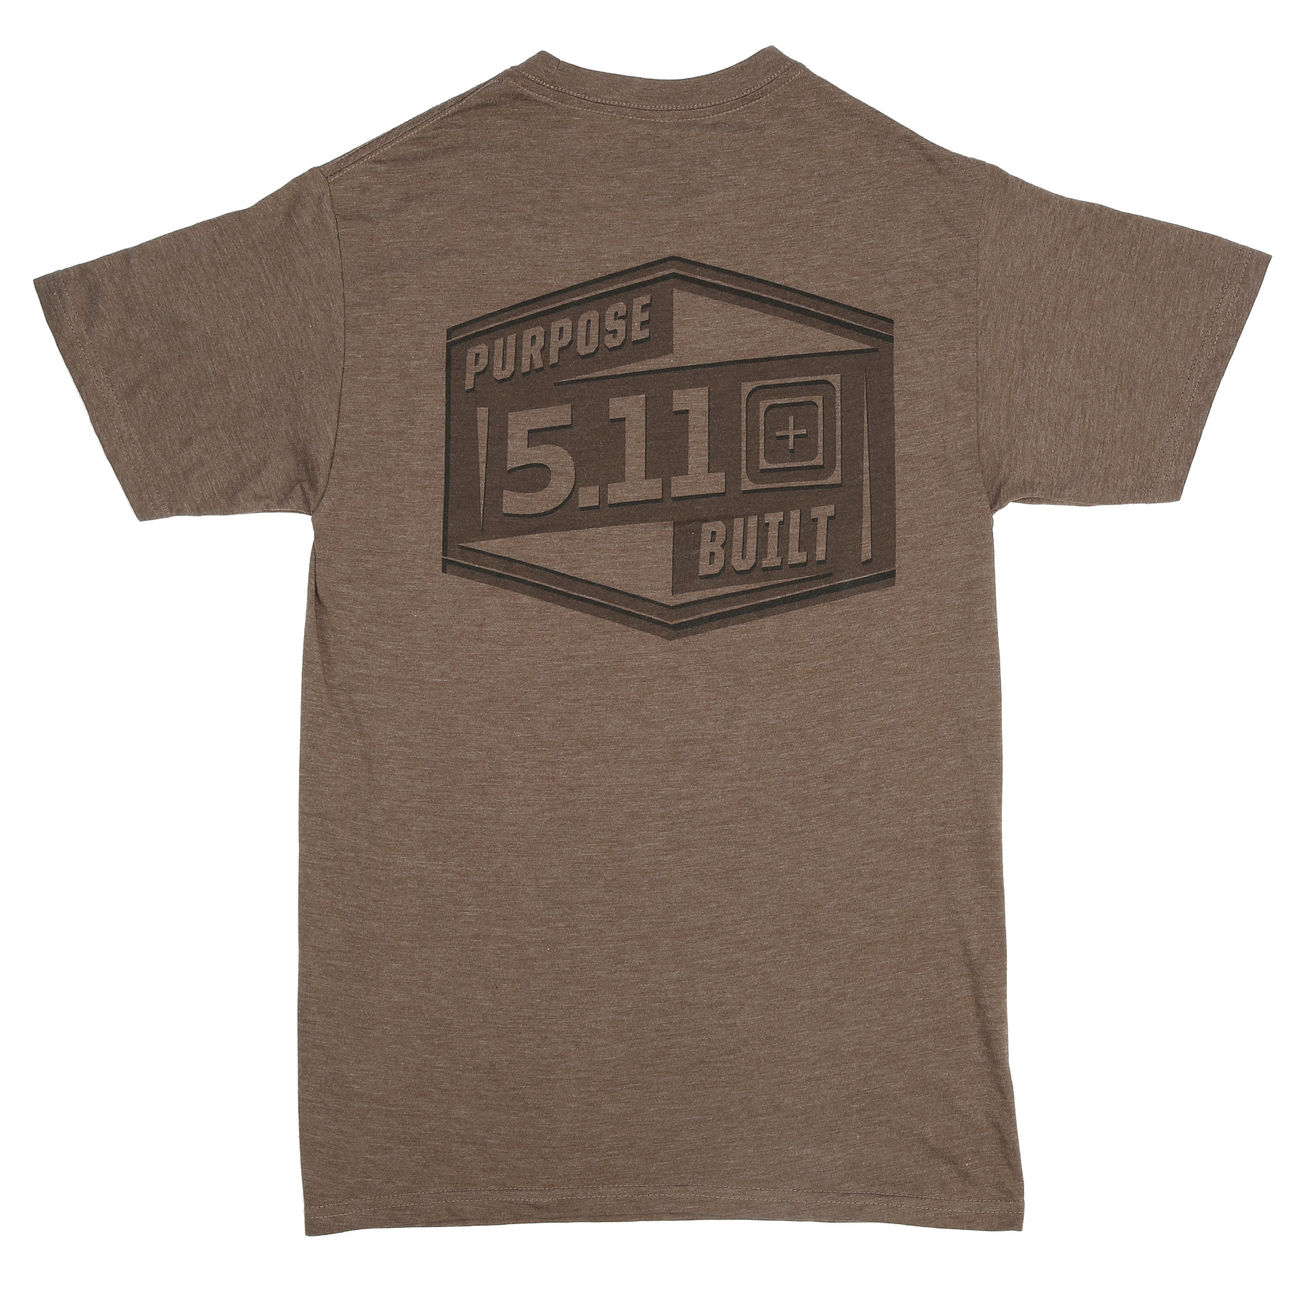 5.11 T-Shirt Purpose Built Tee brown heather 1